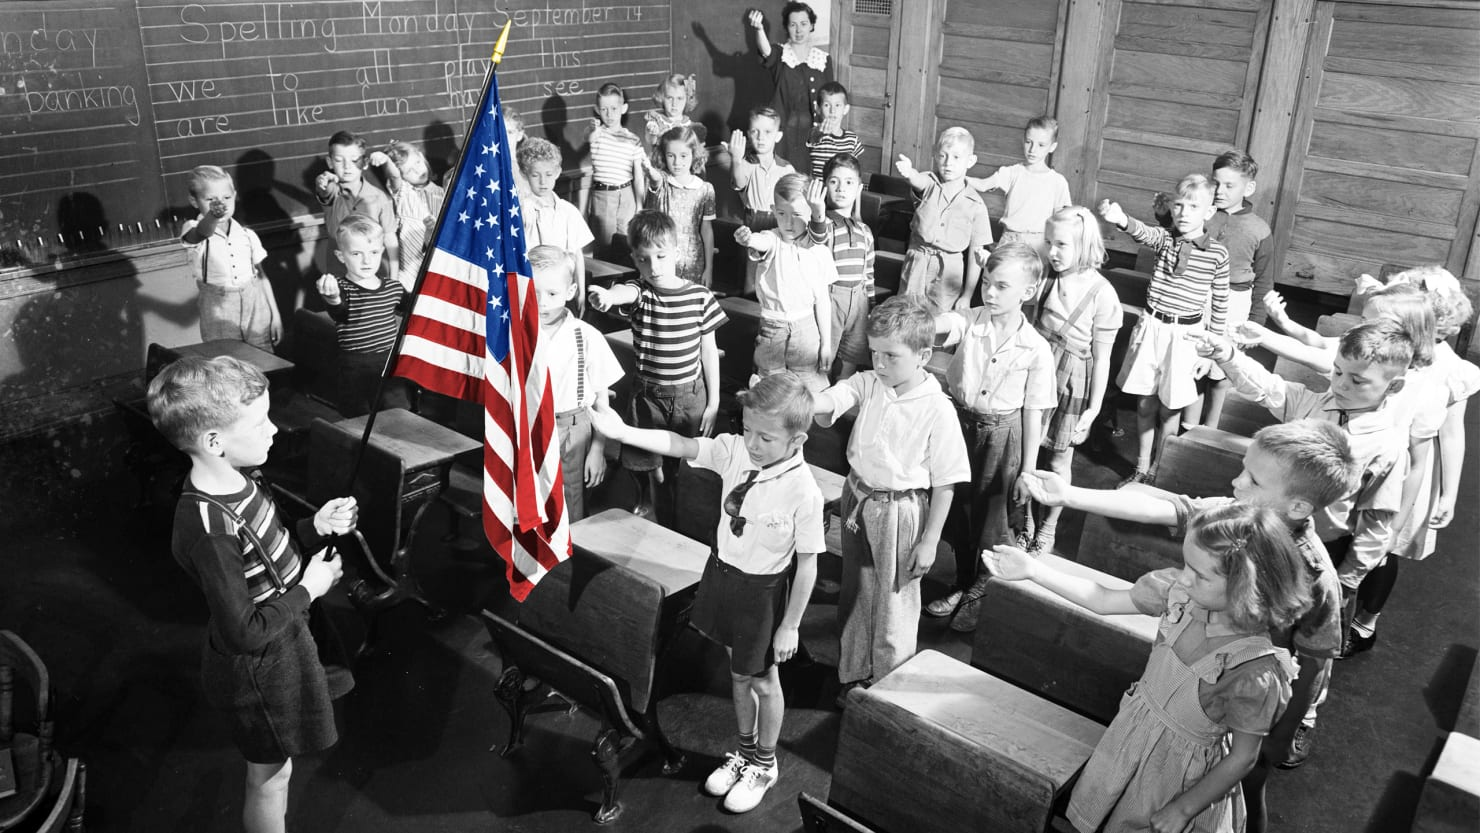 Long Before Donald Trump Demanded NFL Players Stop Kneeling, Patriotism for Profit Began With the Pledge of Allegiance